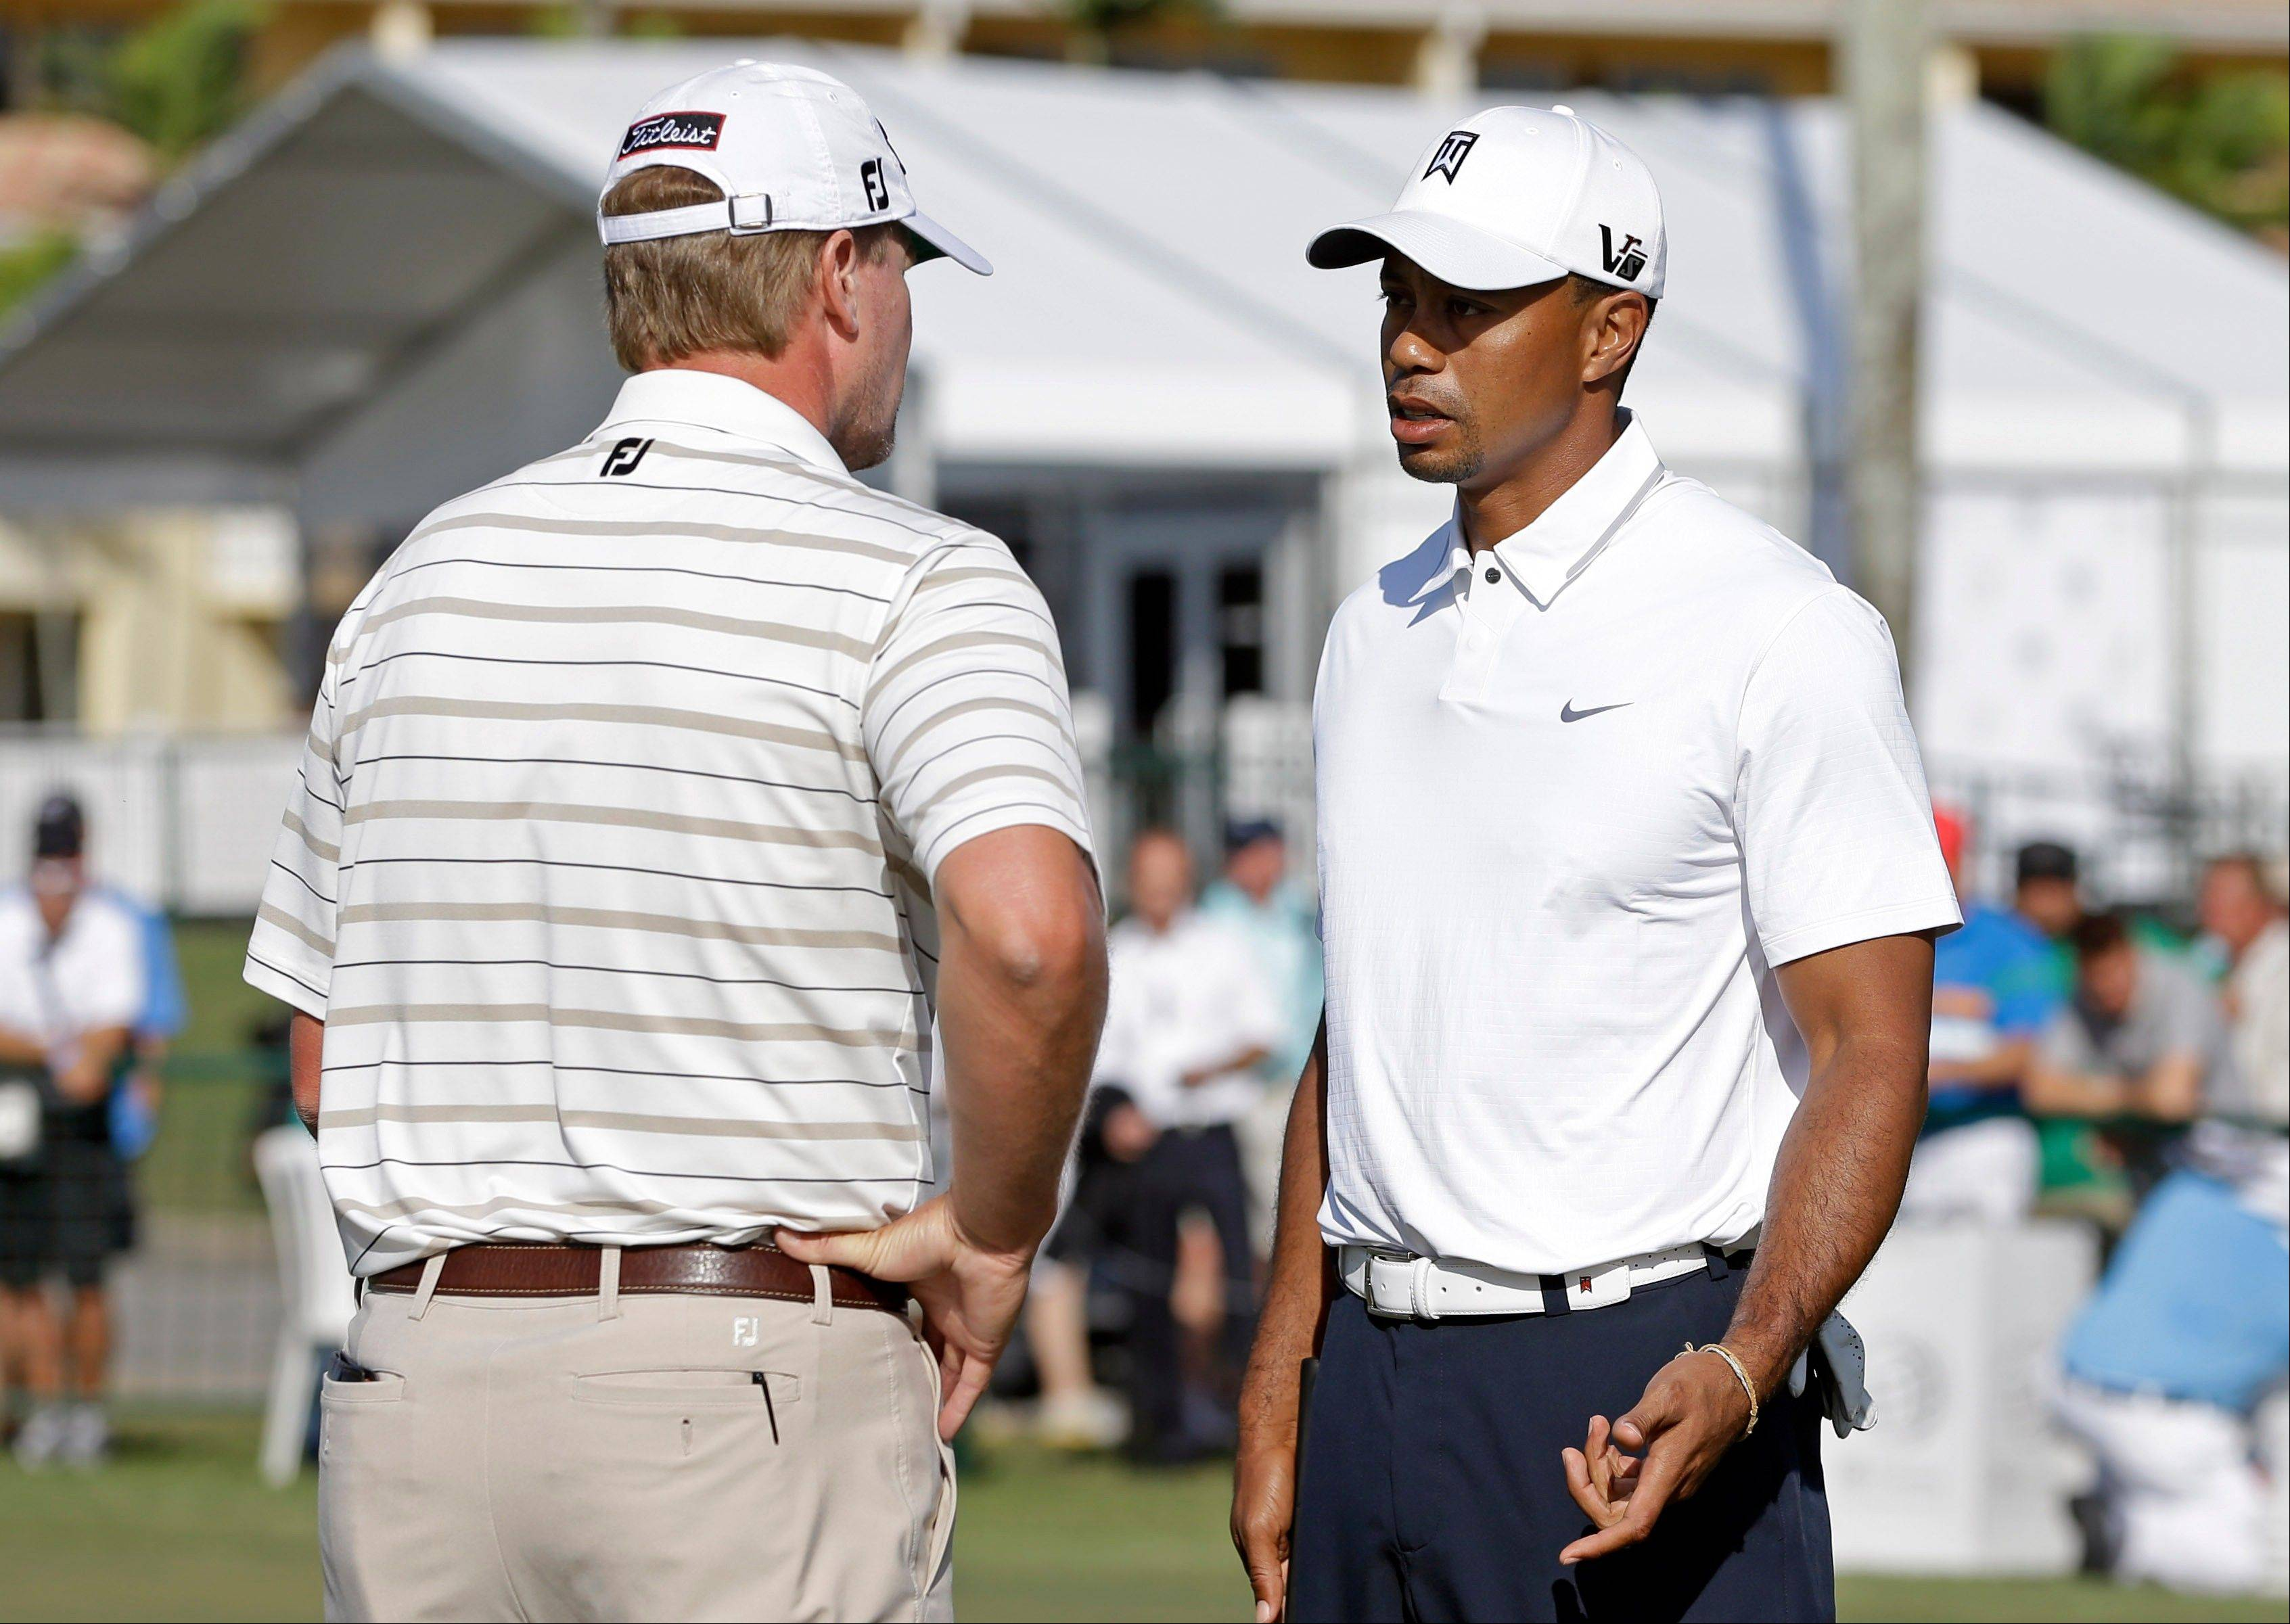 Former Ryder Cup partners Tiger Woods, right, and Steve Stricker finished first and second, respectively, at the Cadillac Championship golf tournament. Woods credited Stricker with helping him work on his putting.